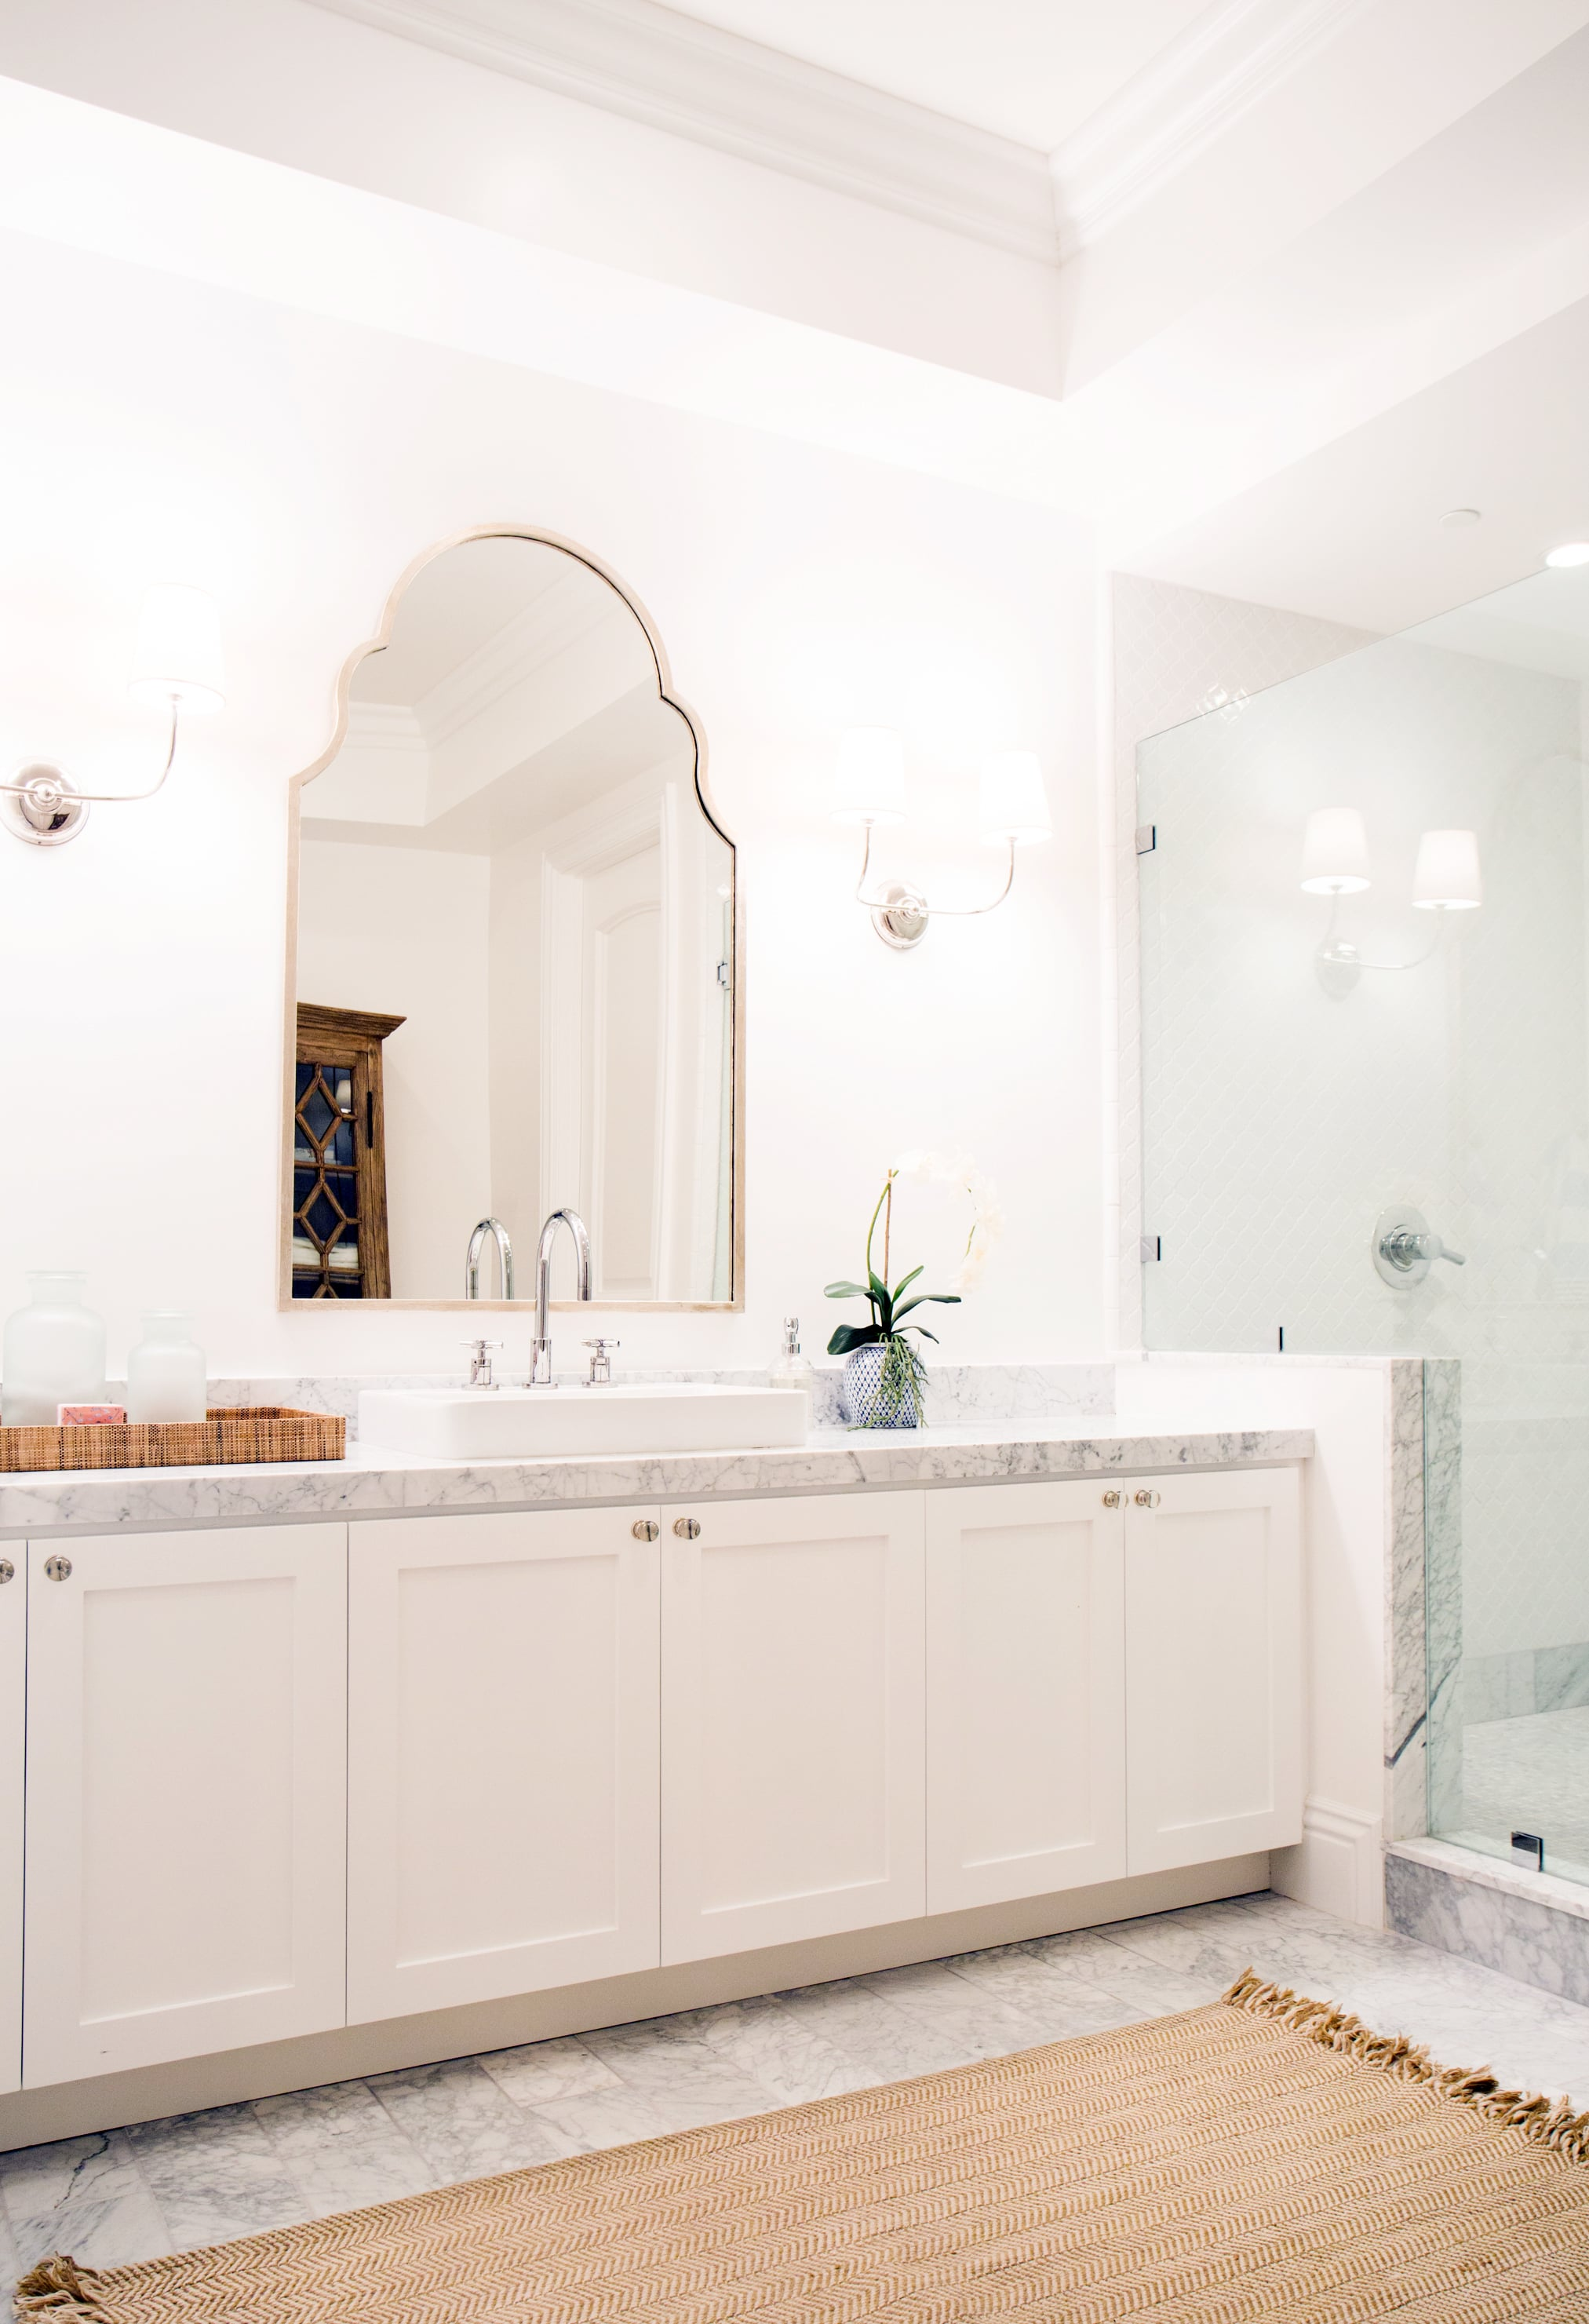 How To Get Rid Of Ants In The Bathroom Popsugar Home